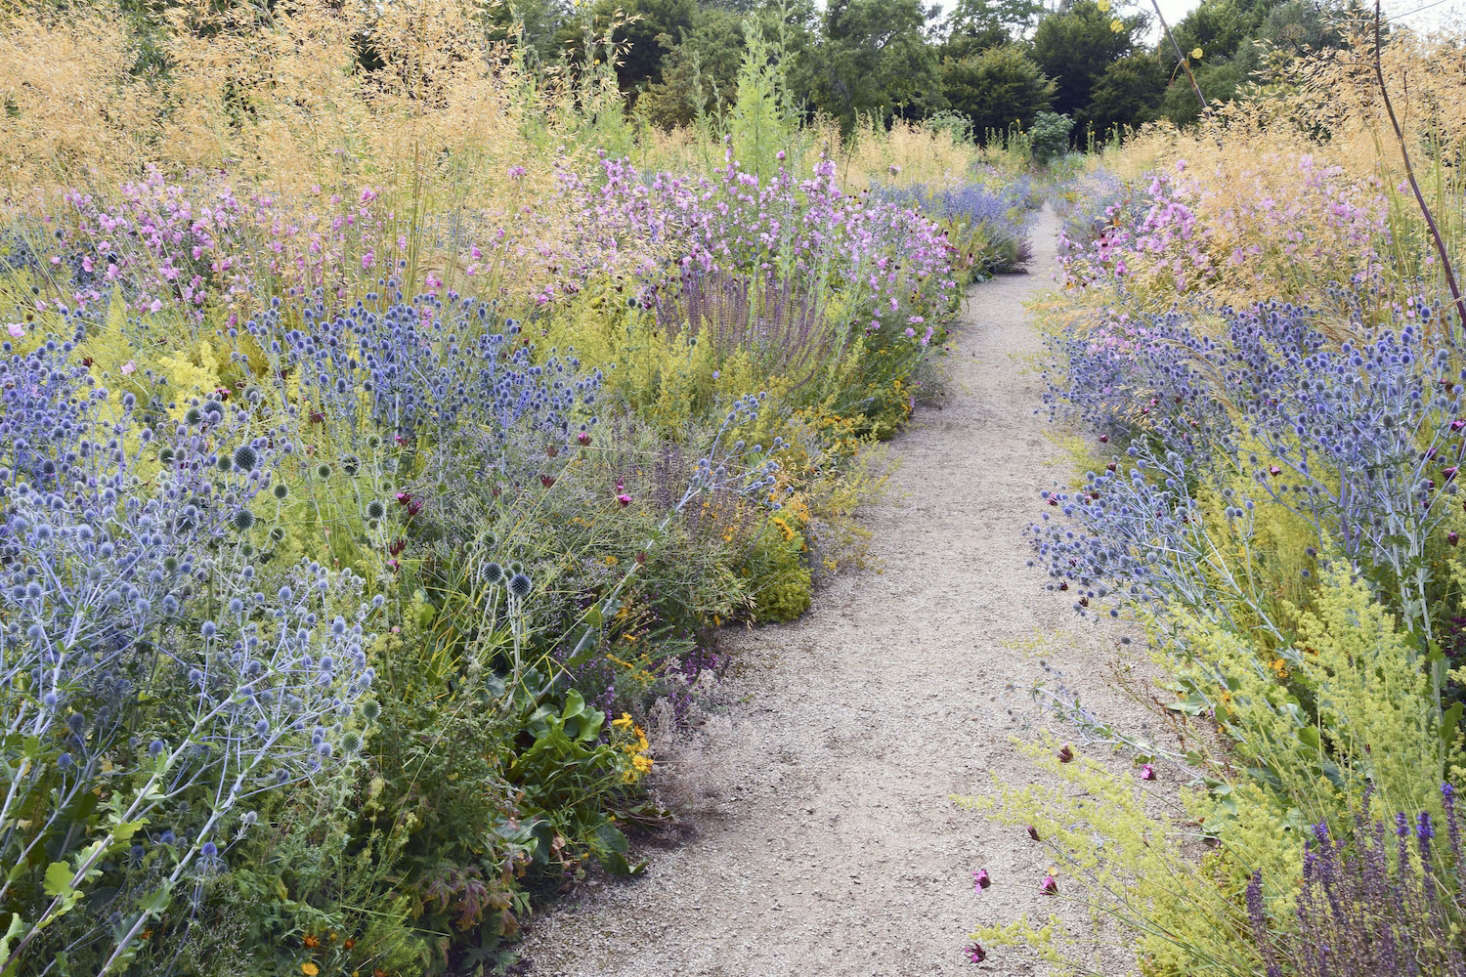 Stipa giganta and wildflowers edge a gravel path in the Merton borders atUniversity of Oxford Botanic Garden.Photograph courtesy ofTimber Press. For more, seeAsk The Expert: How to Plant a Meadow Garden, with James Hitchmough.